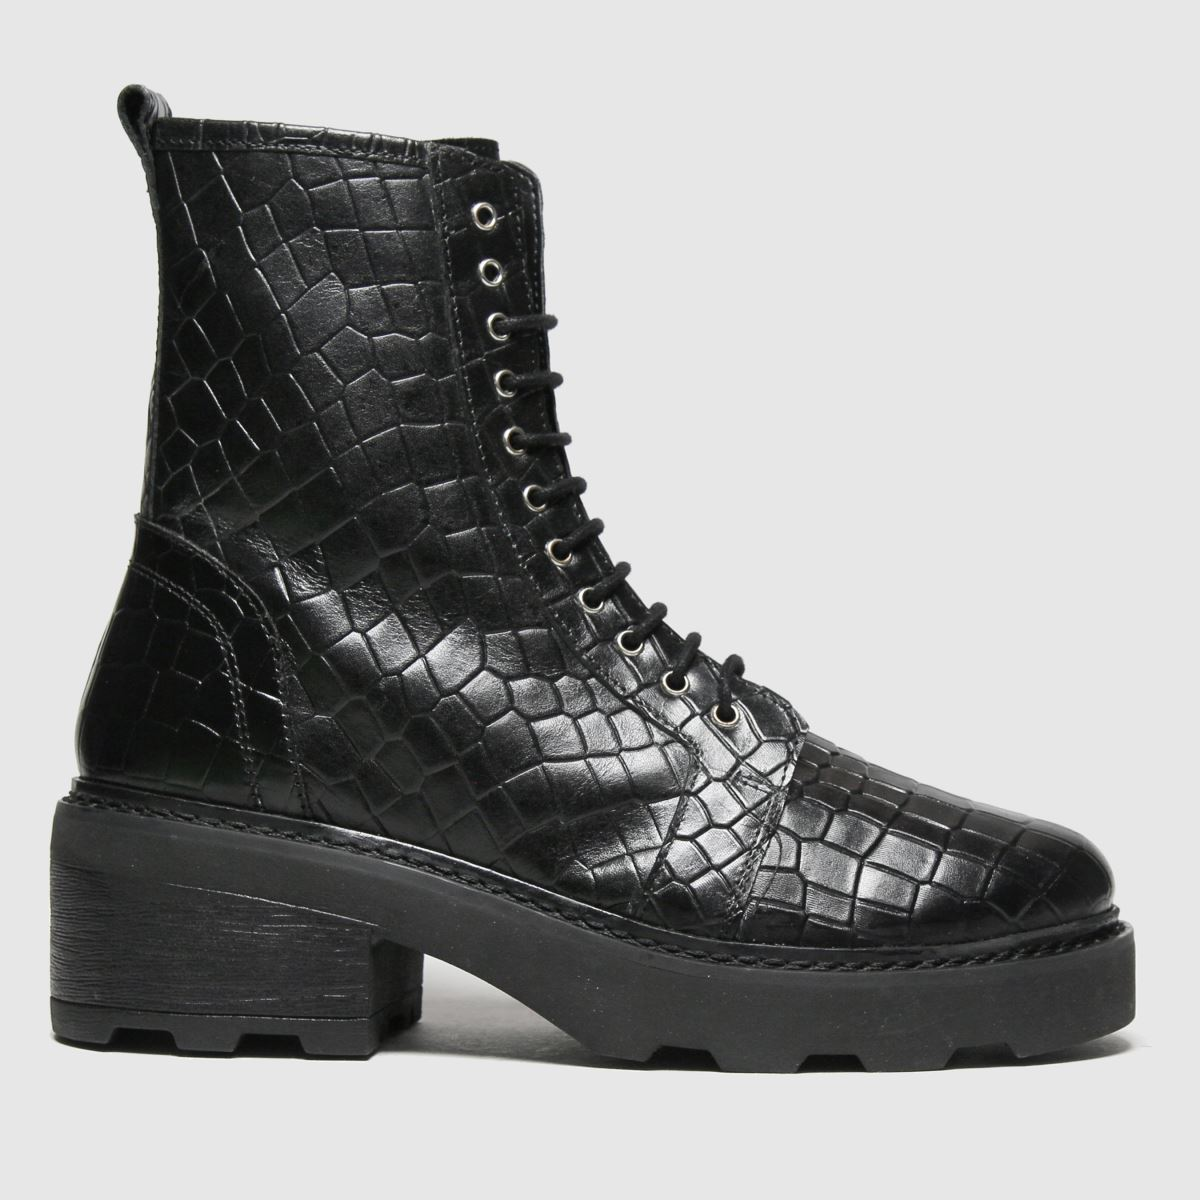 Schuh Black Arvid Croc Leather Lace Up Boots